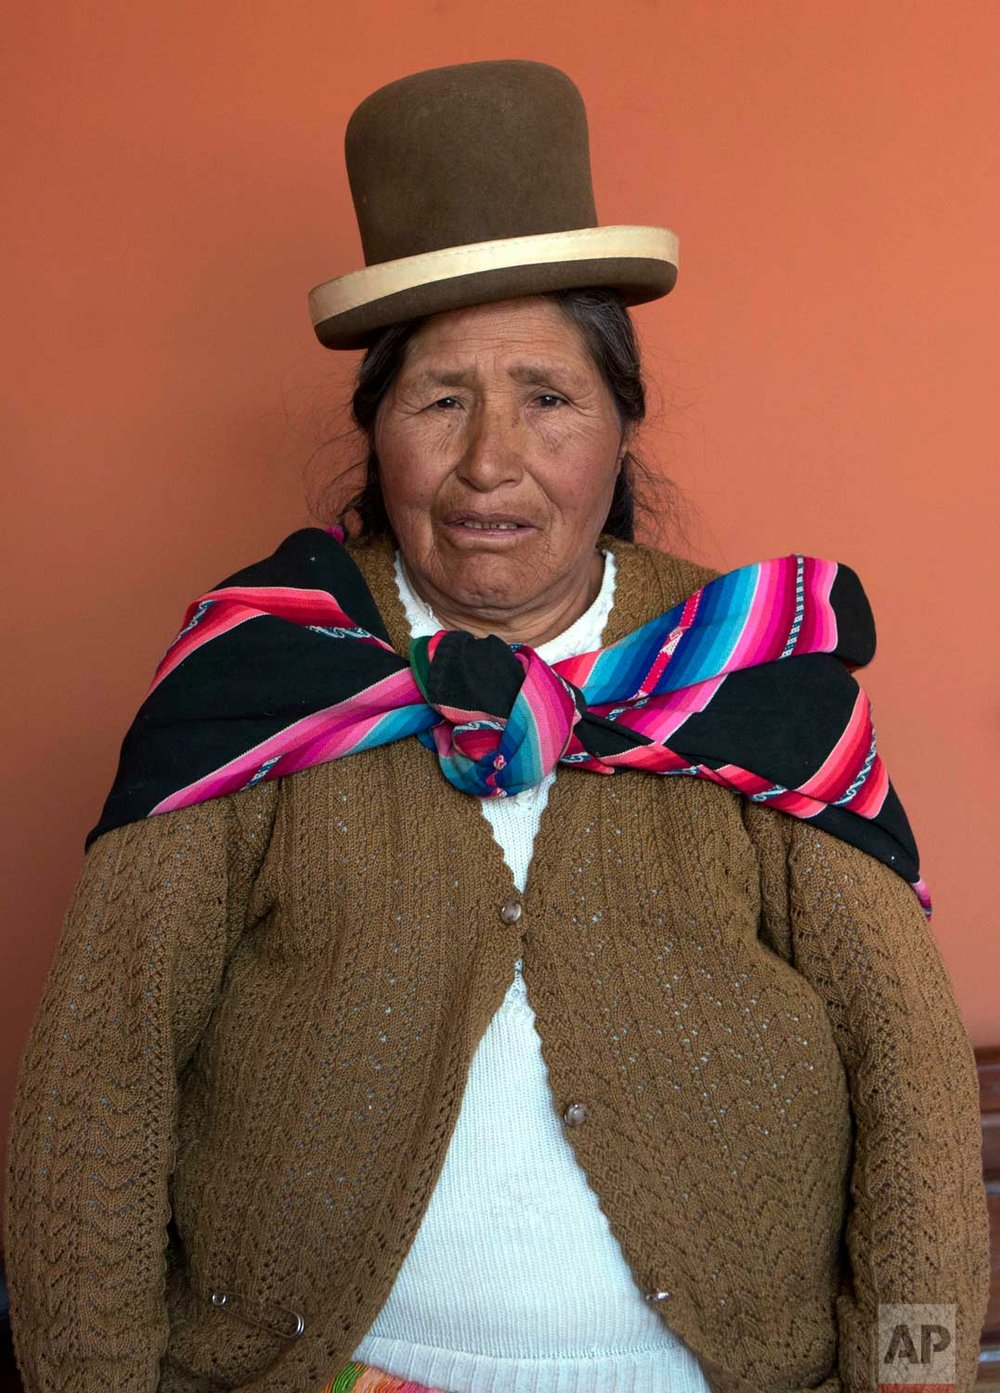 In this May 15, 2017 photo, midwife Ruperta Tola, 67, poses for a portrait at the Nila Heredia hospital in Patacamaya, Bolivia. Tola says she's been a midwife for over 40 years, starting when she was only 15 under the tutelage of her grandmother. She says people call her day and night, and sometimes to far away places in the countryside to give massages, treat broken bones, cure upset stomaches and deliver babies. (AP Photo/Juan Karita)